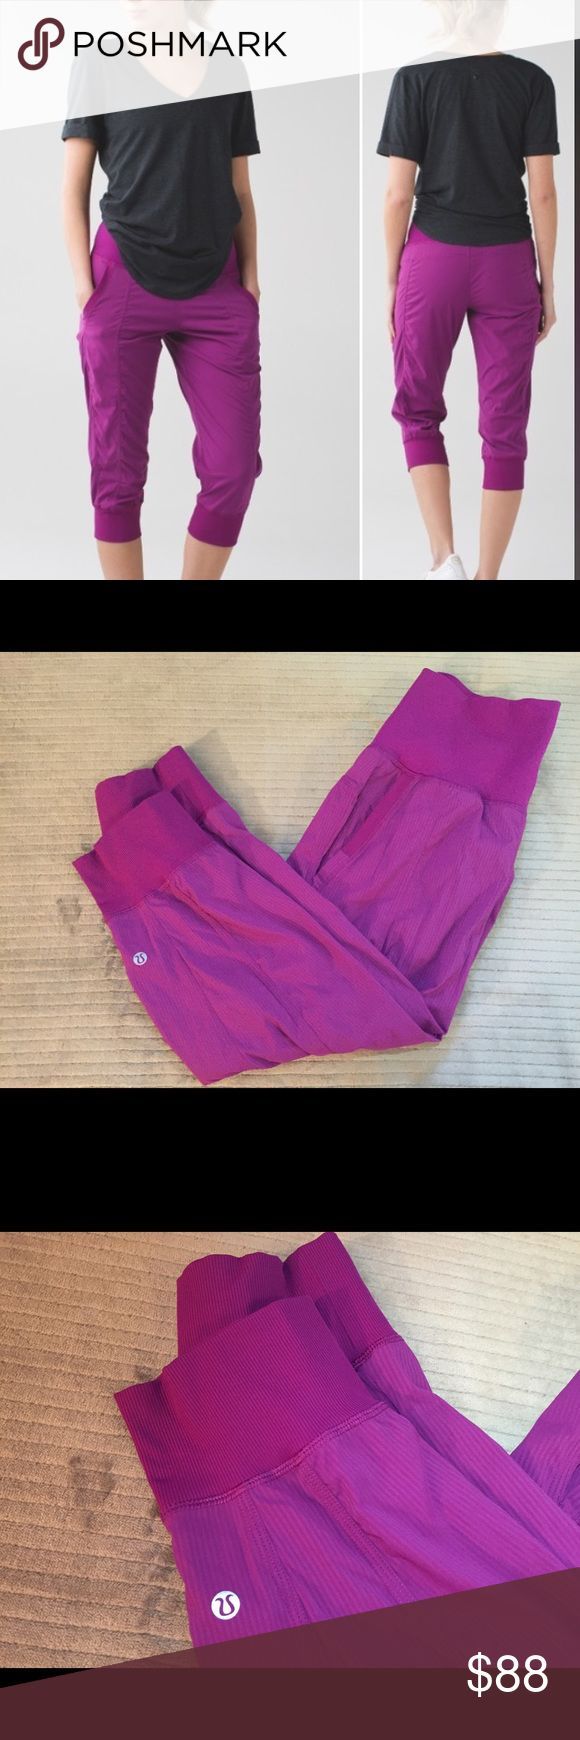 NWOT Rare Lululemon In Flux Crop Regal Plum Sold Out on Lululemon.com!! These are in new condition, worn maybe once. The style is Lululemon in flux crop in purple. These are made of the same material as Lululemon's dance studio pants and crops. Pull these easy-to-layer crops over your tights or shorts and get to class or the gym quick! Comfortable and super cute!  Key features- sweat-wicking Swift fabric moves with you cottony-soft Luon® fabric waistband is four-way stretch roll down the…